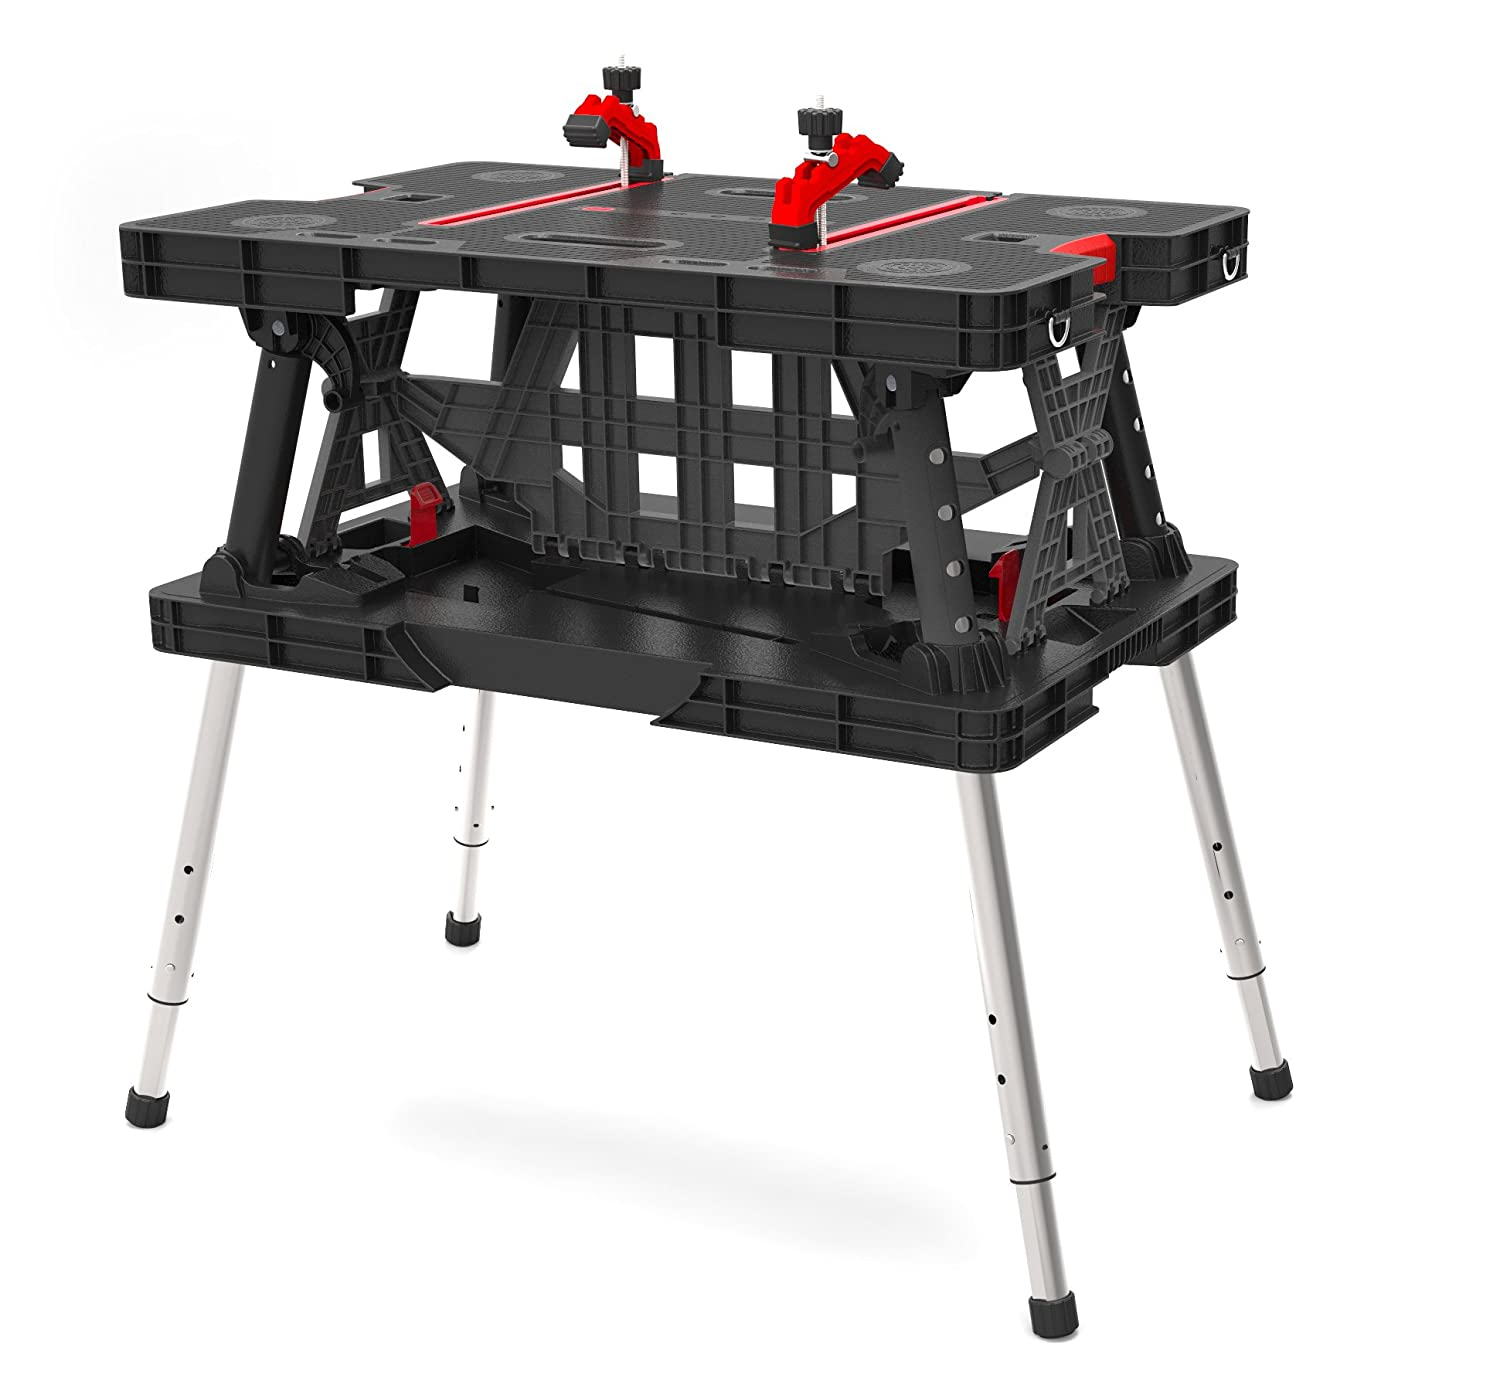 keter 217679 adjustable leg folding work table new free shipping ebay. Black Bedroom Furniture Sets. Home Design Ideas